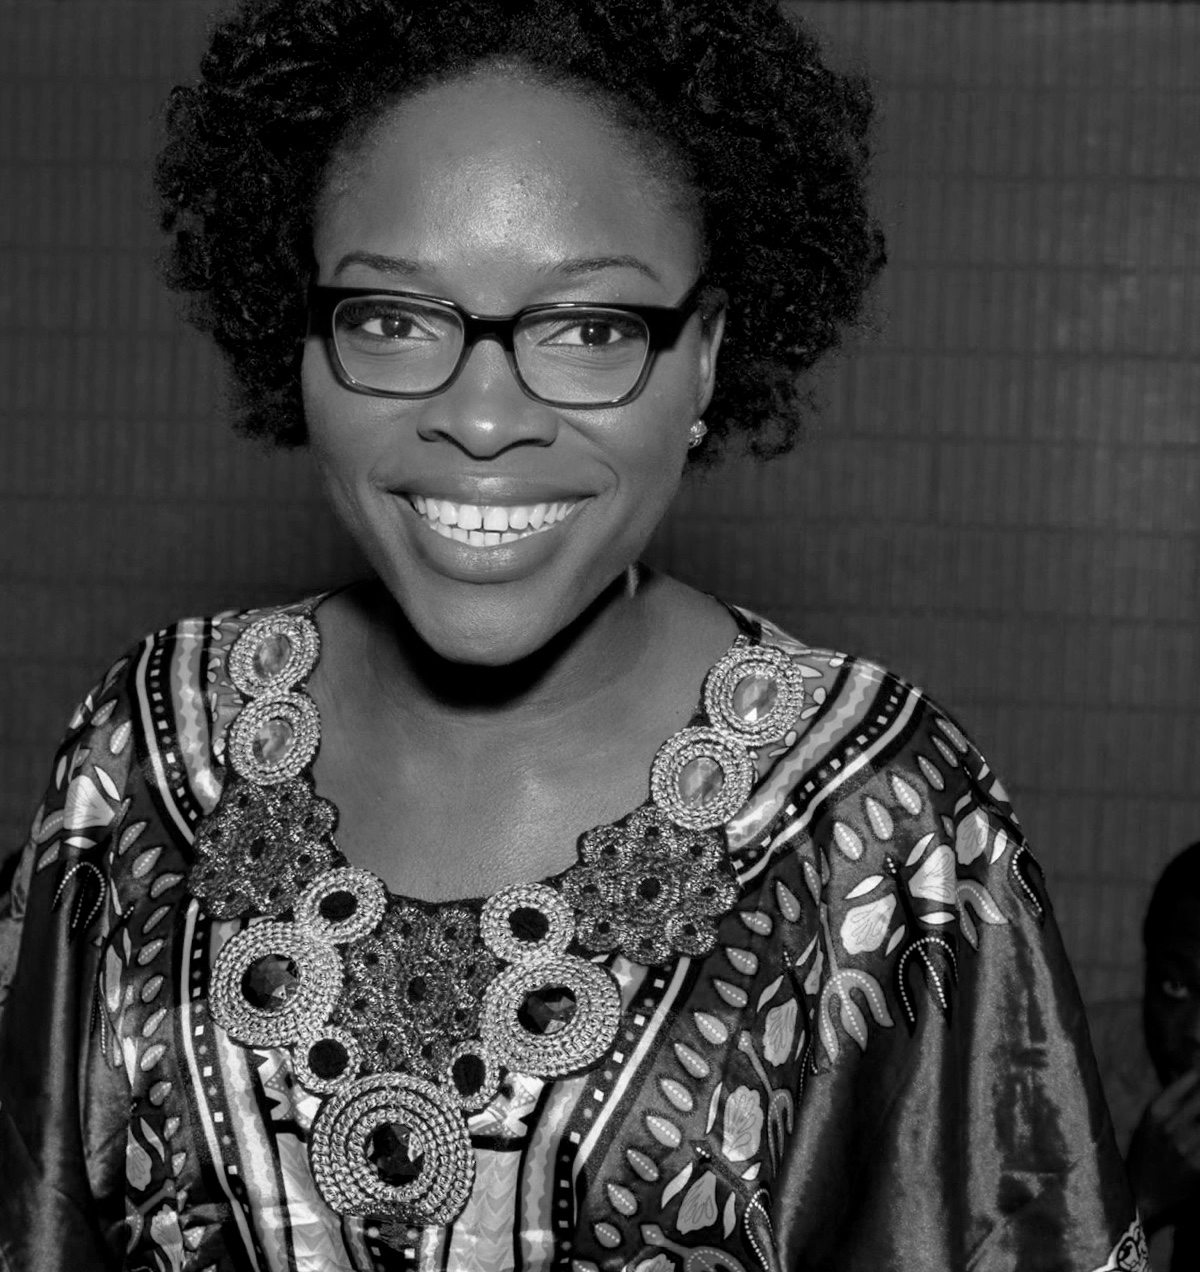 Oniye - Development Enthusiast, Writer and TV JunkieWith a background in Global Affairs and Conflict Analysis, Oniye is constantly thinking about inequality, identities and African Development. She is obsessed with The New Yorker, African History and explorations of the Nigerian narrative.Connect with her via Twitter, LinkedInor her personal blog.